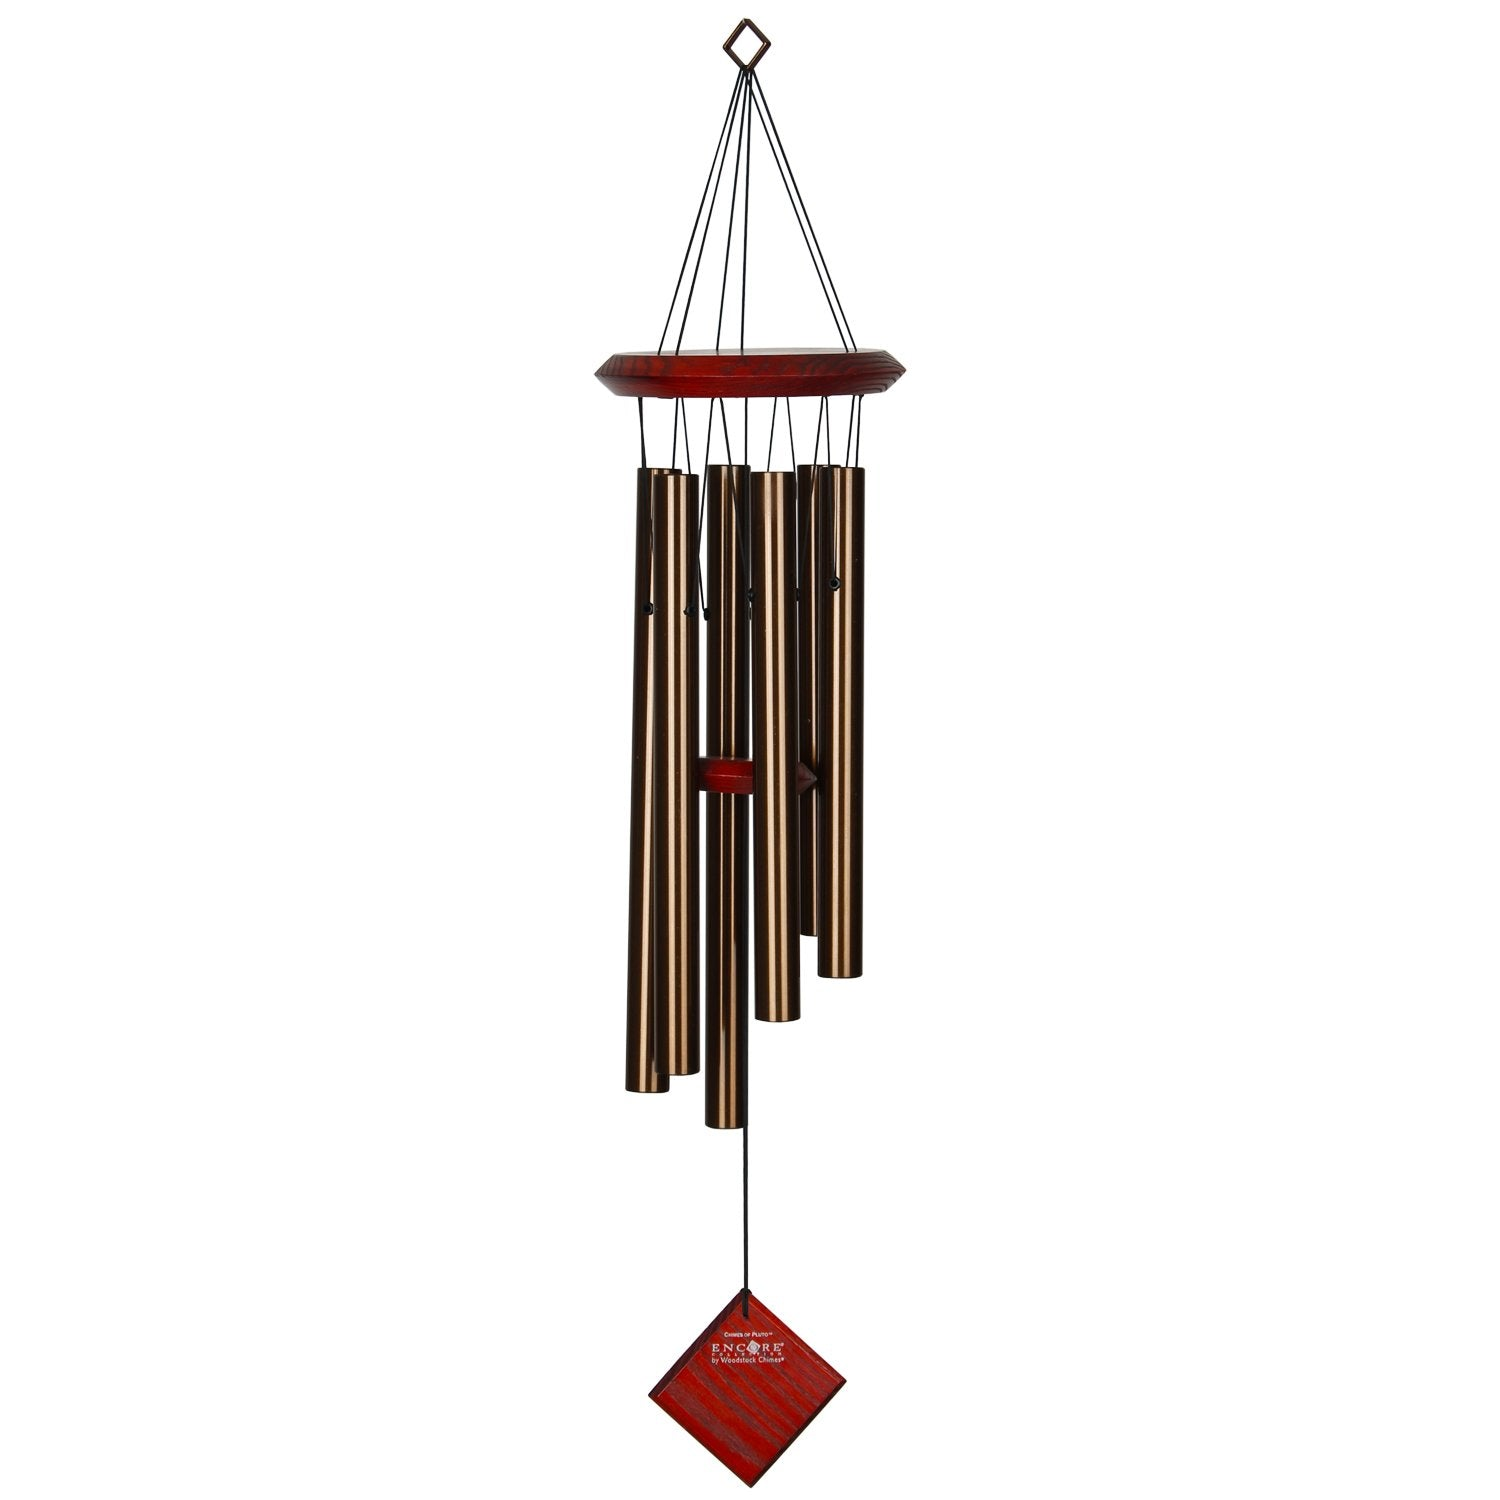 Encore Chimes of Pluto - Bronze full product image